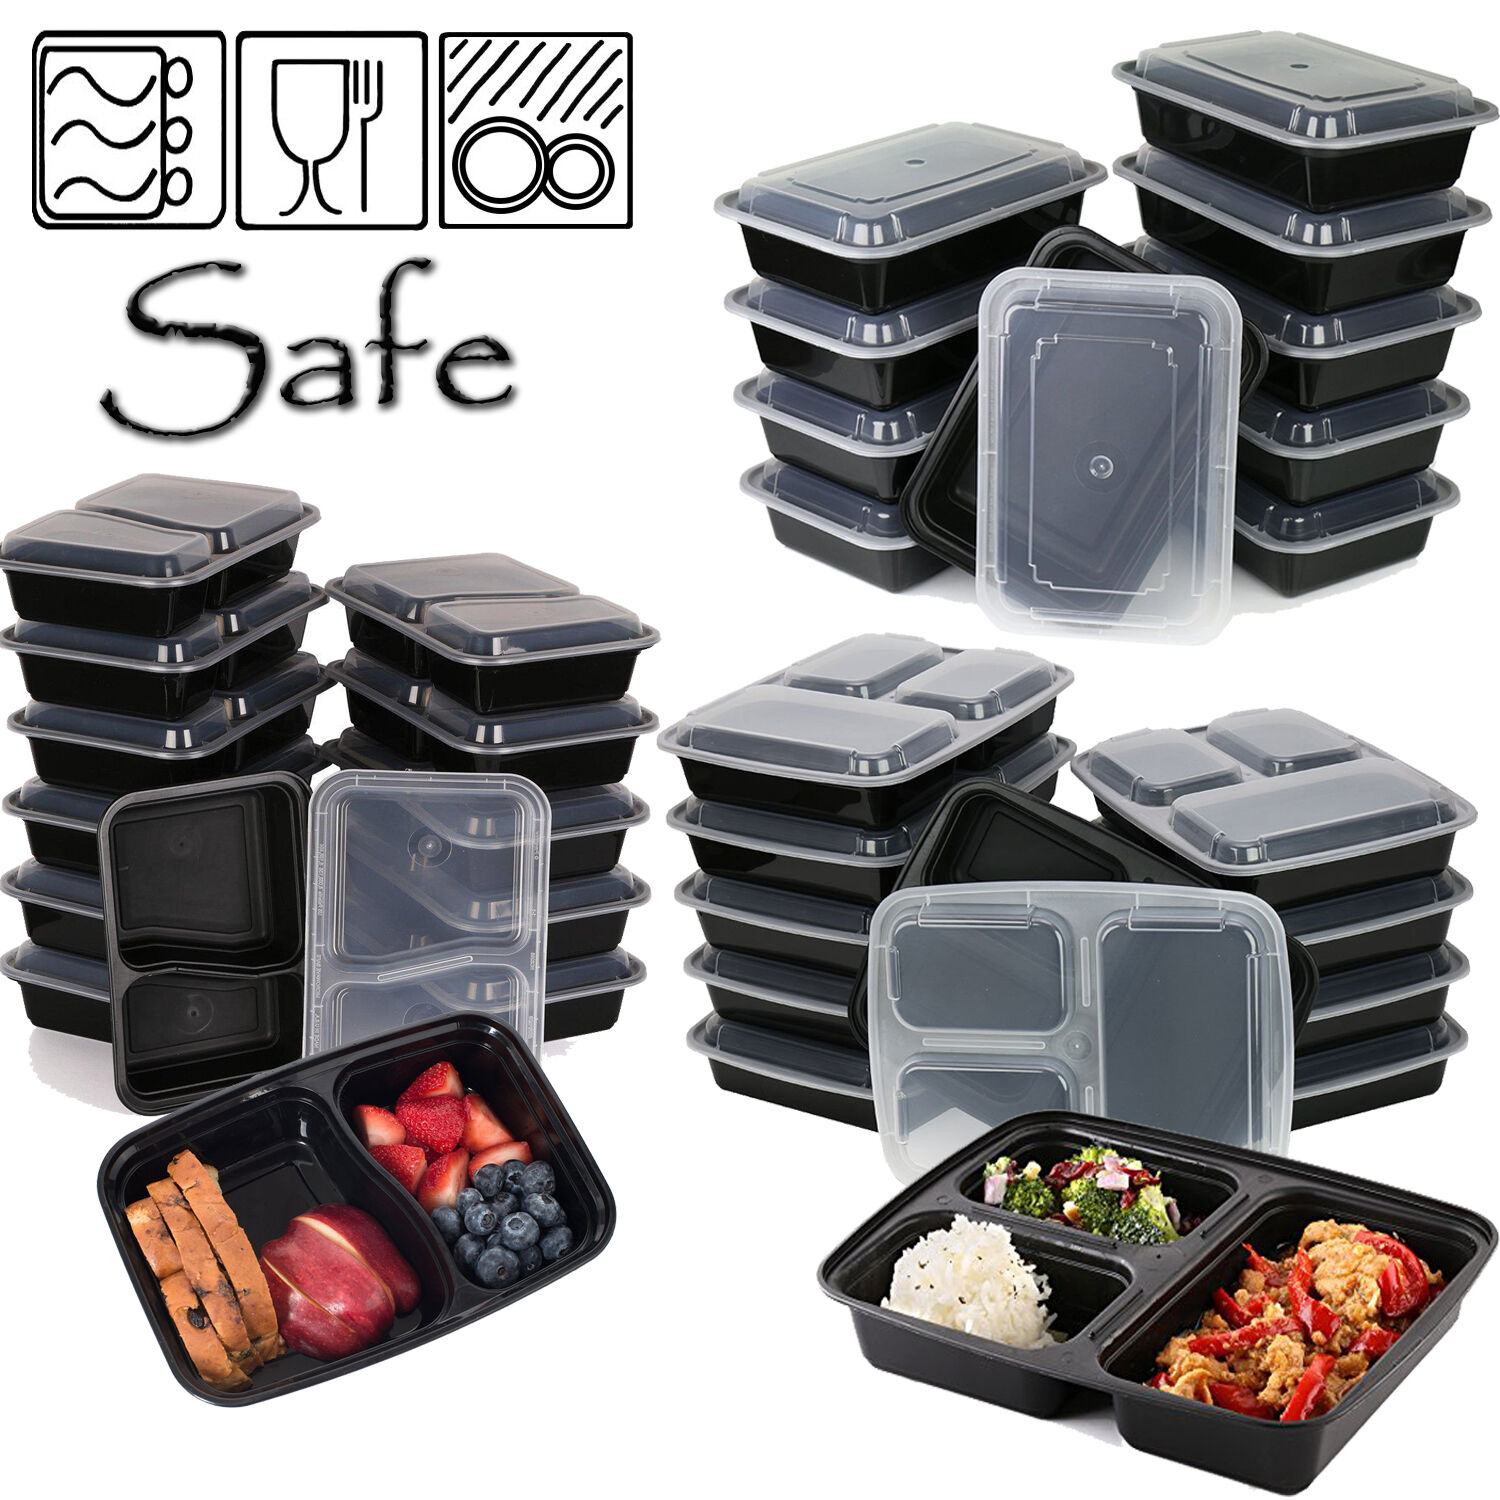 10 meal prep food containers 1 2 3 compartment bpa free plastic lunch box lids ebay. Black Bedroom Furniture Sets. Home Design Ideas